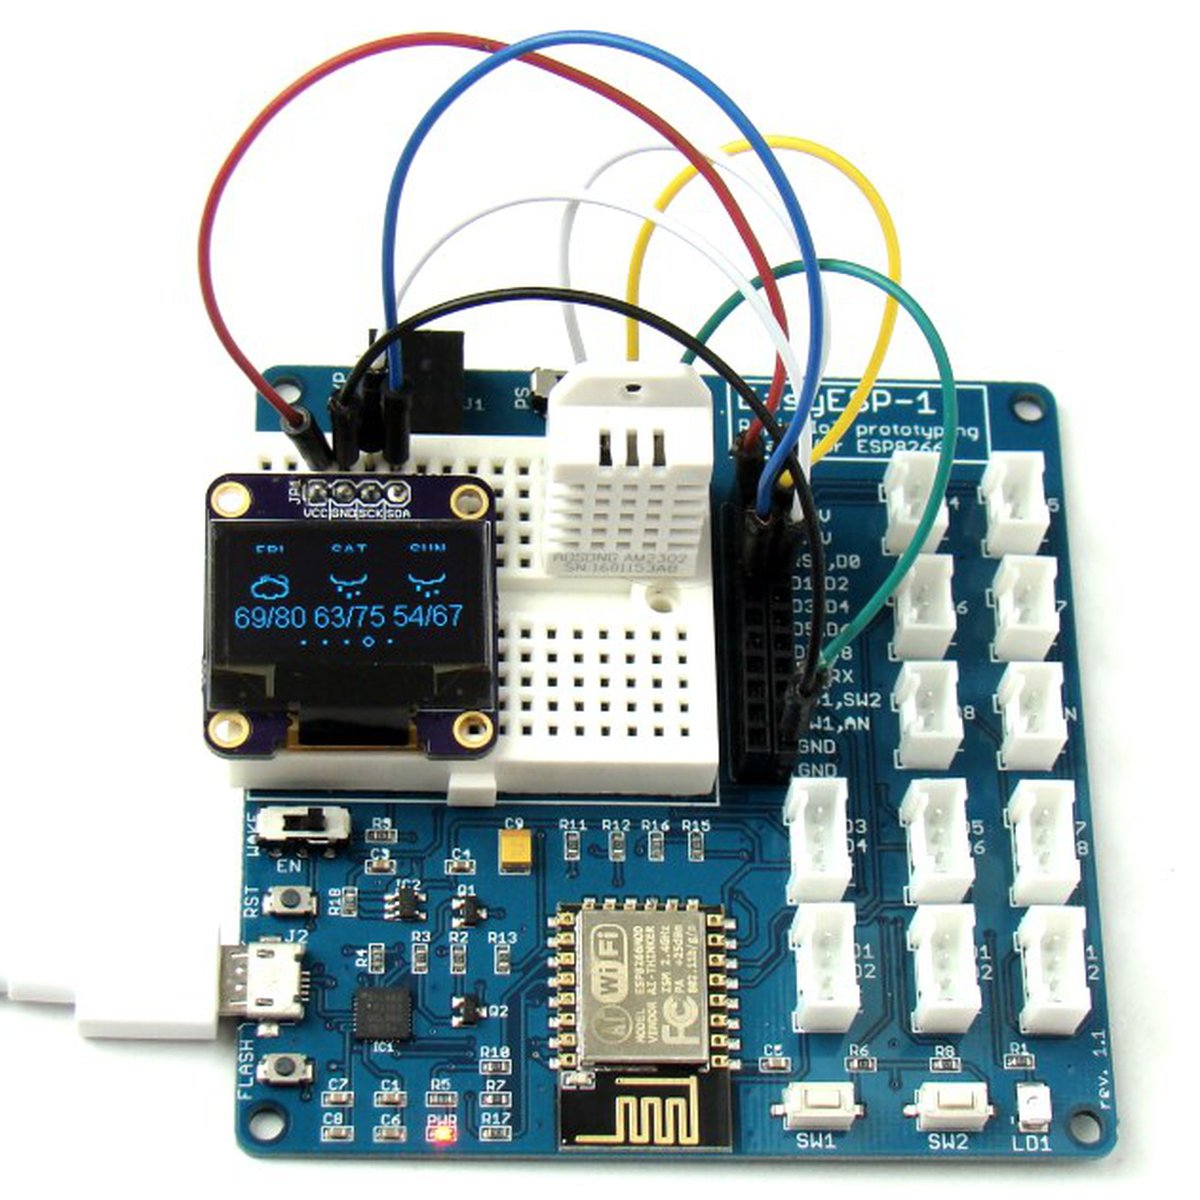 Easyesp 1 A Rapid Development Board For Esp8266 From Embedded Lab Project 42 Breadboarded Circuit On Tindie